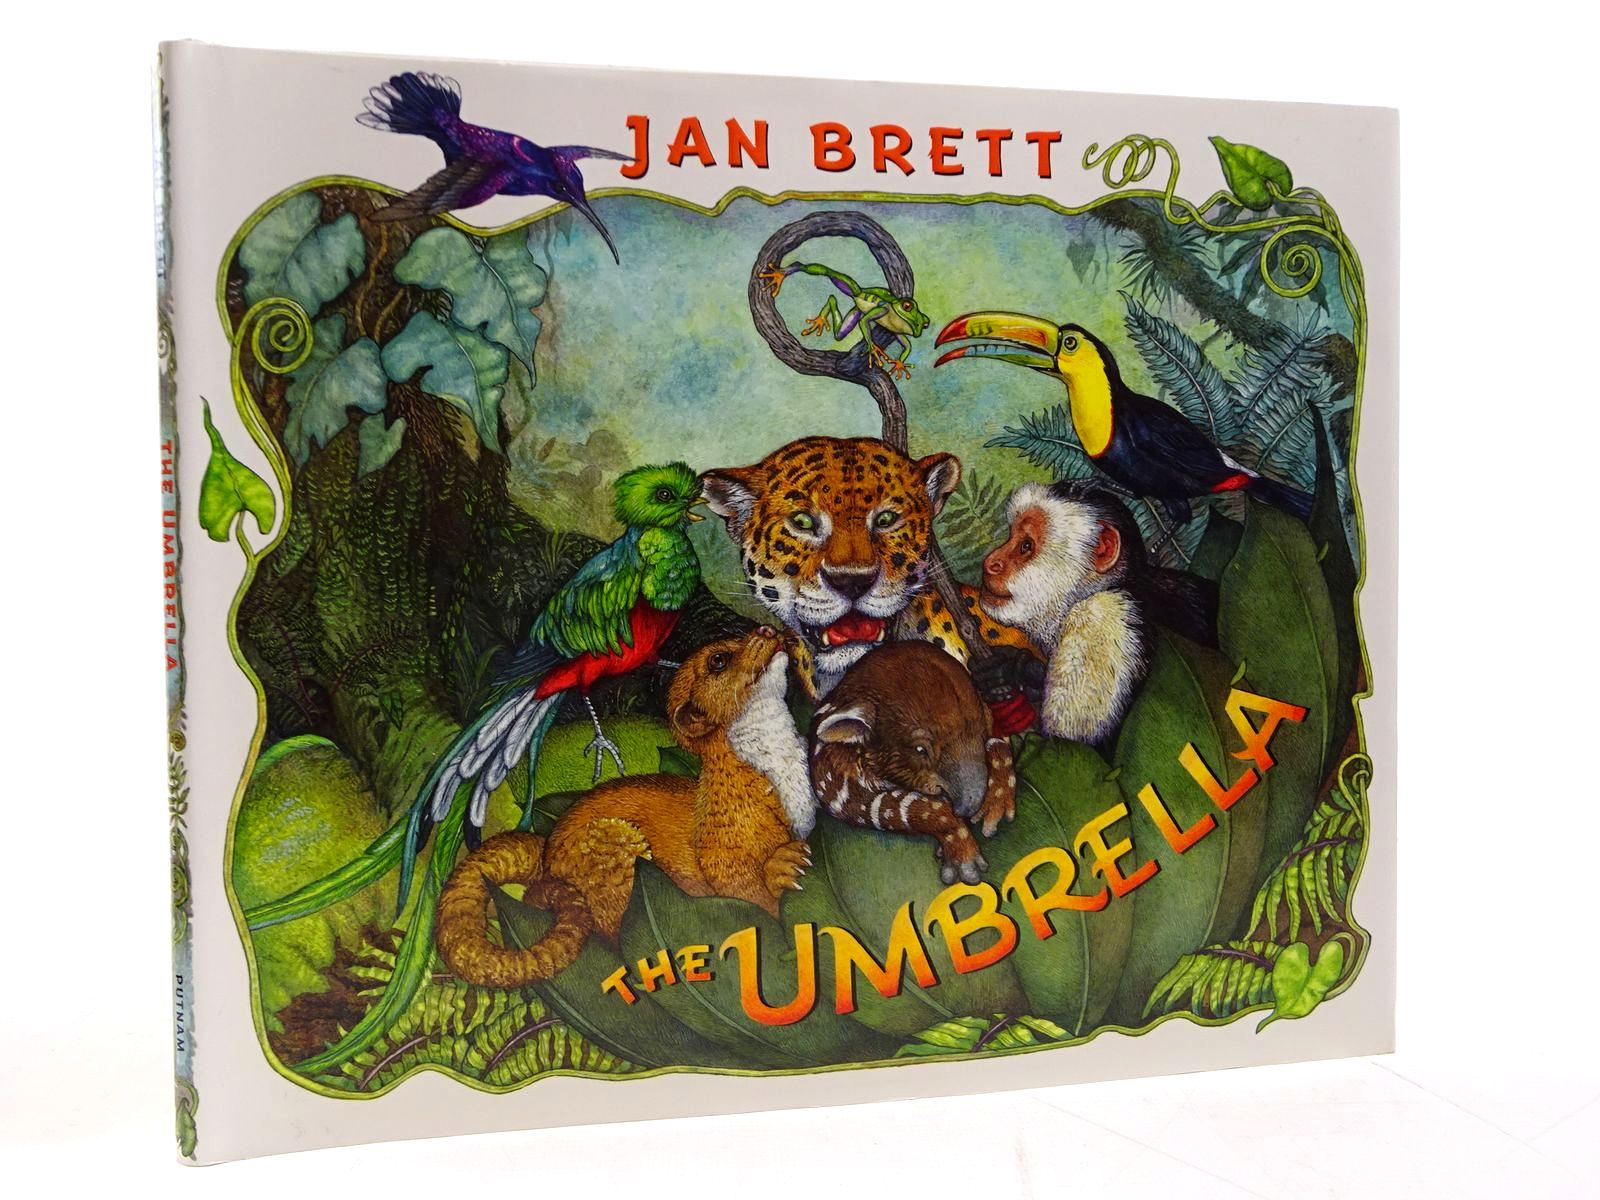 Photo of THE UMBRELLA written by Brett, Jan illustrated by Brett, Jan published by G.P. Putnam's Sons (STOCK CODE: 2130798)  for sale by Stella & Rose's Books